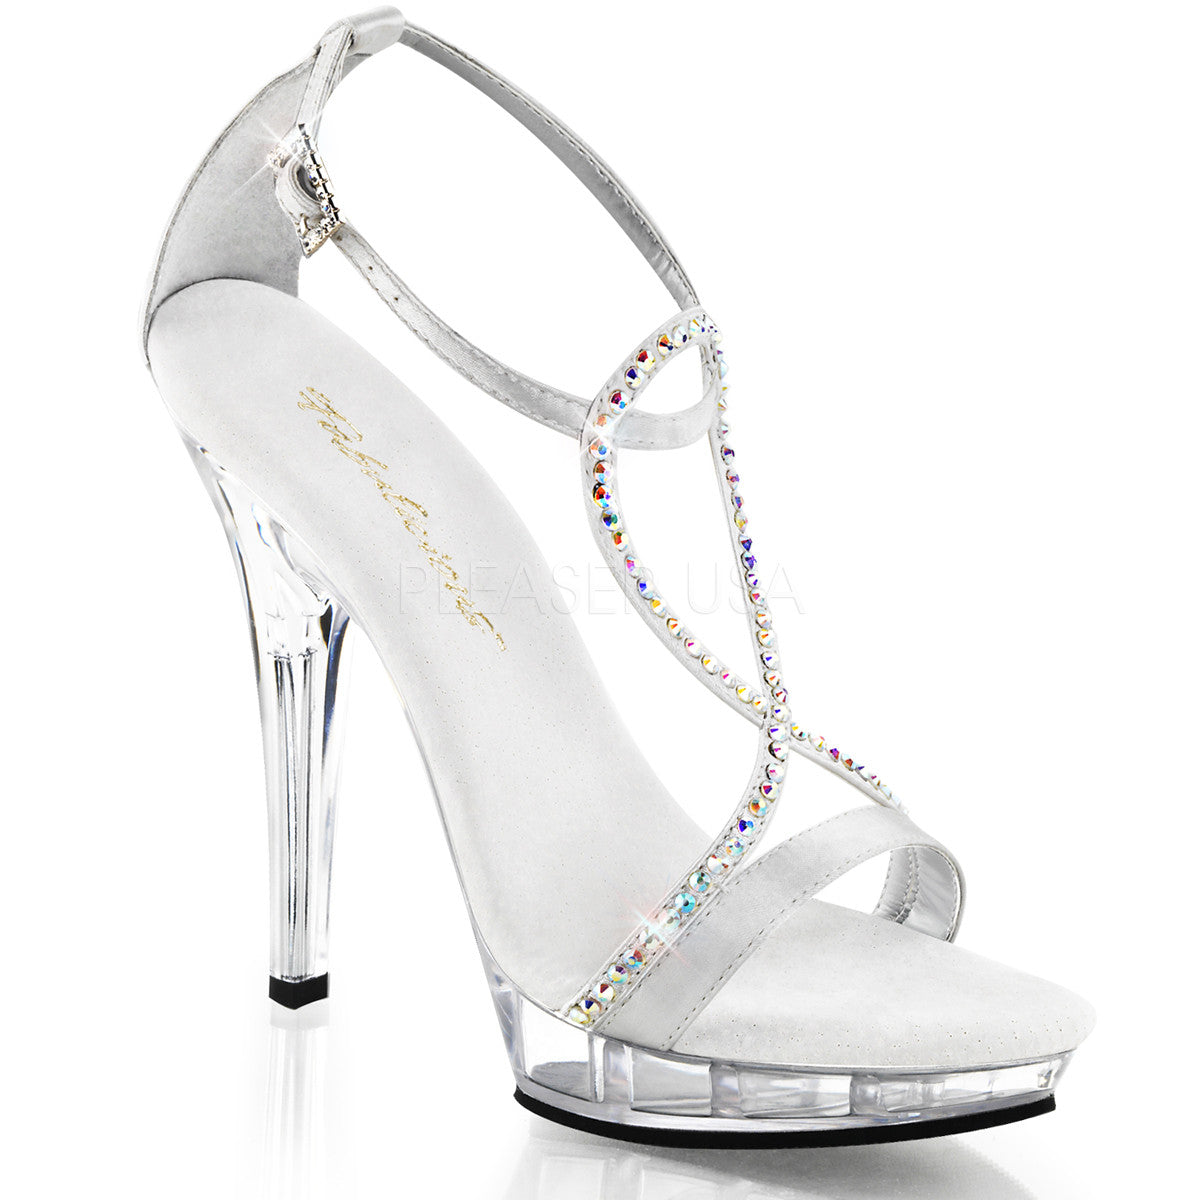 Fabulicious LIP-156 Silver Satin Ankle Strap Sandals - Shoecup.com